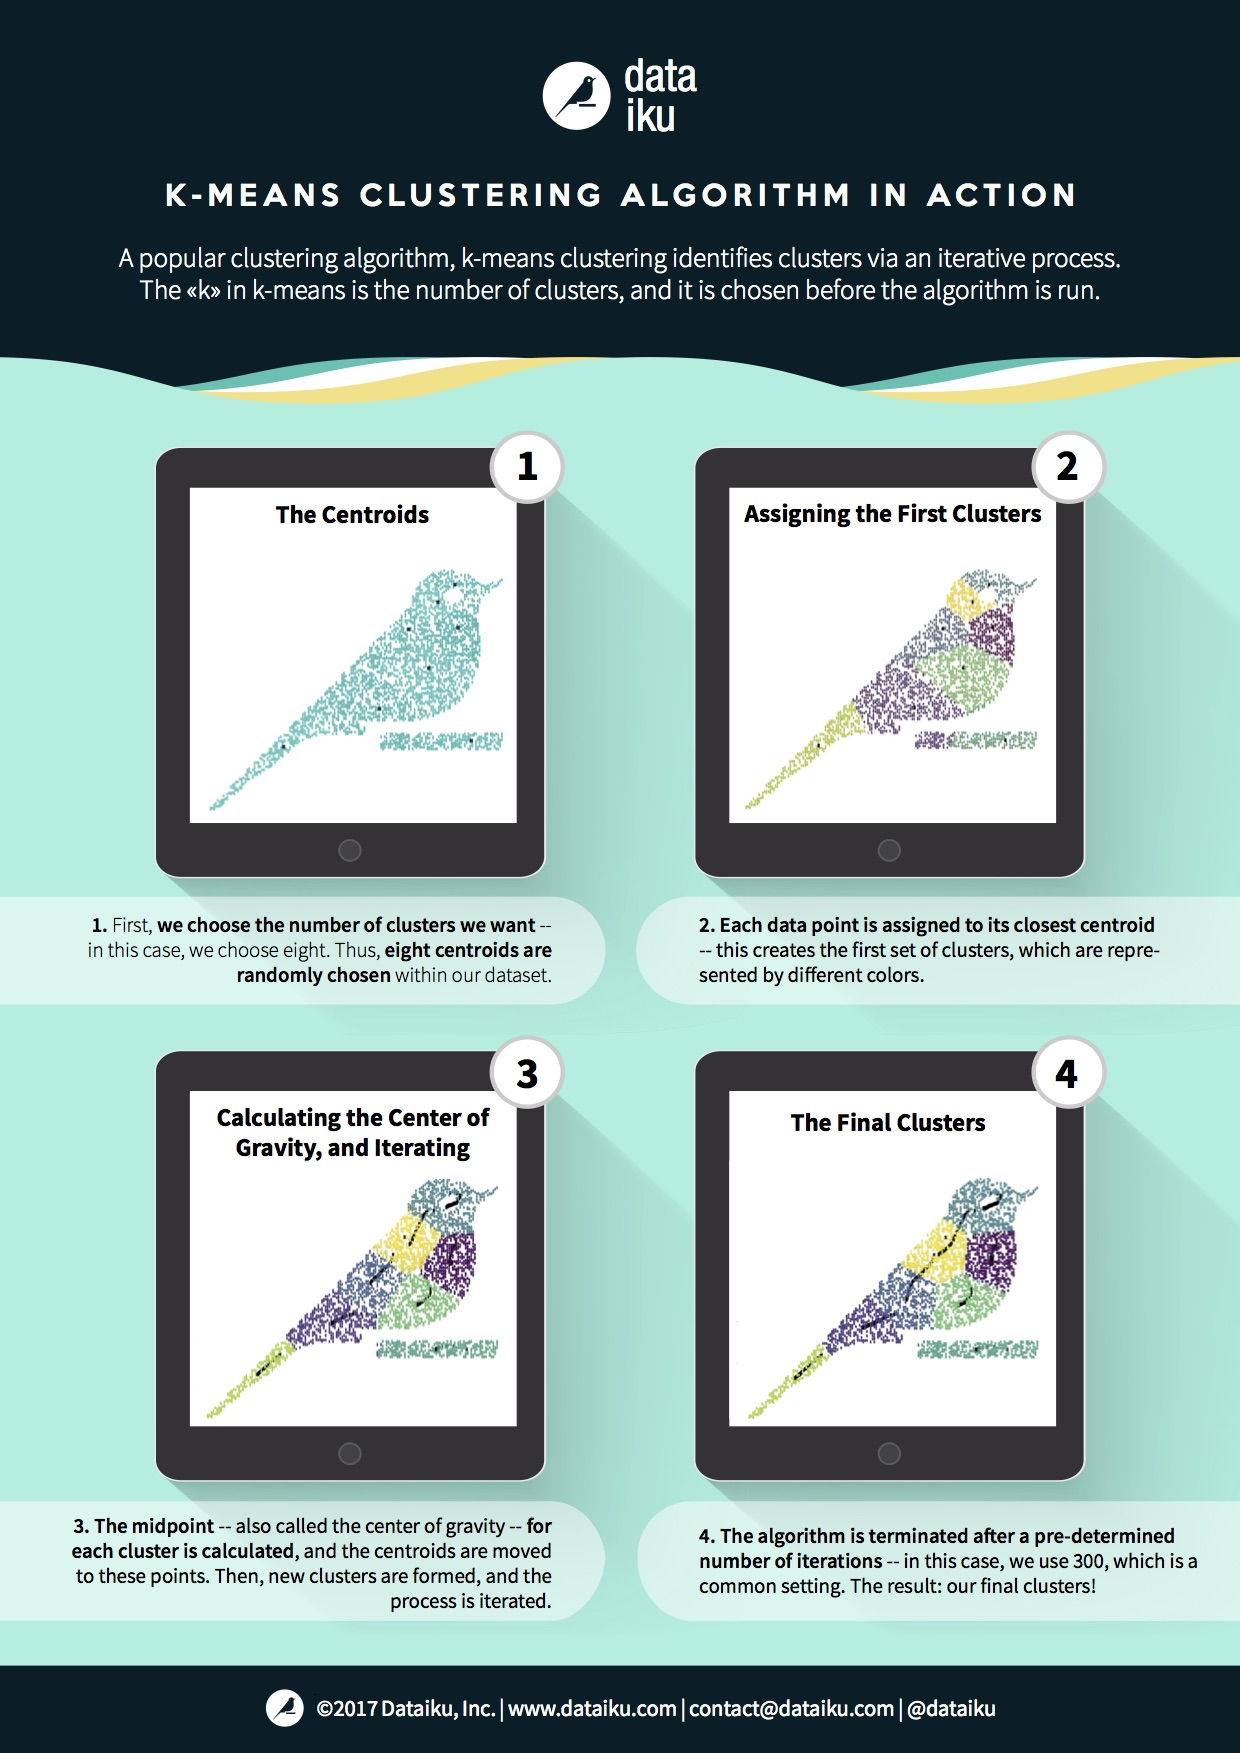 Clustering models infographic